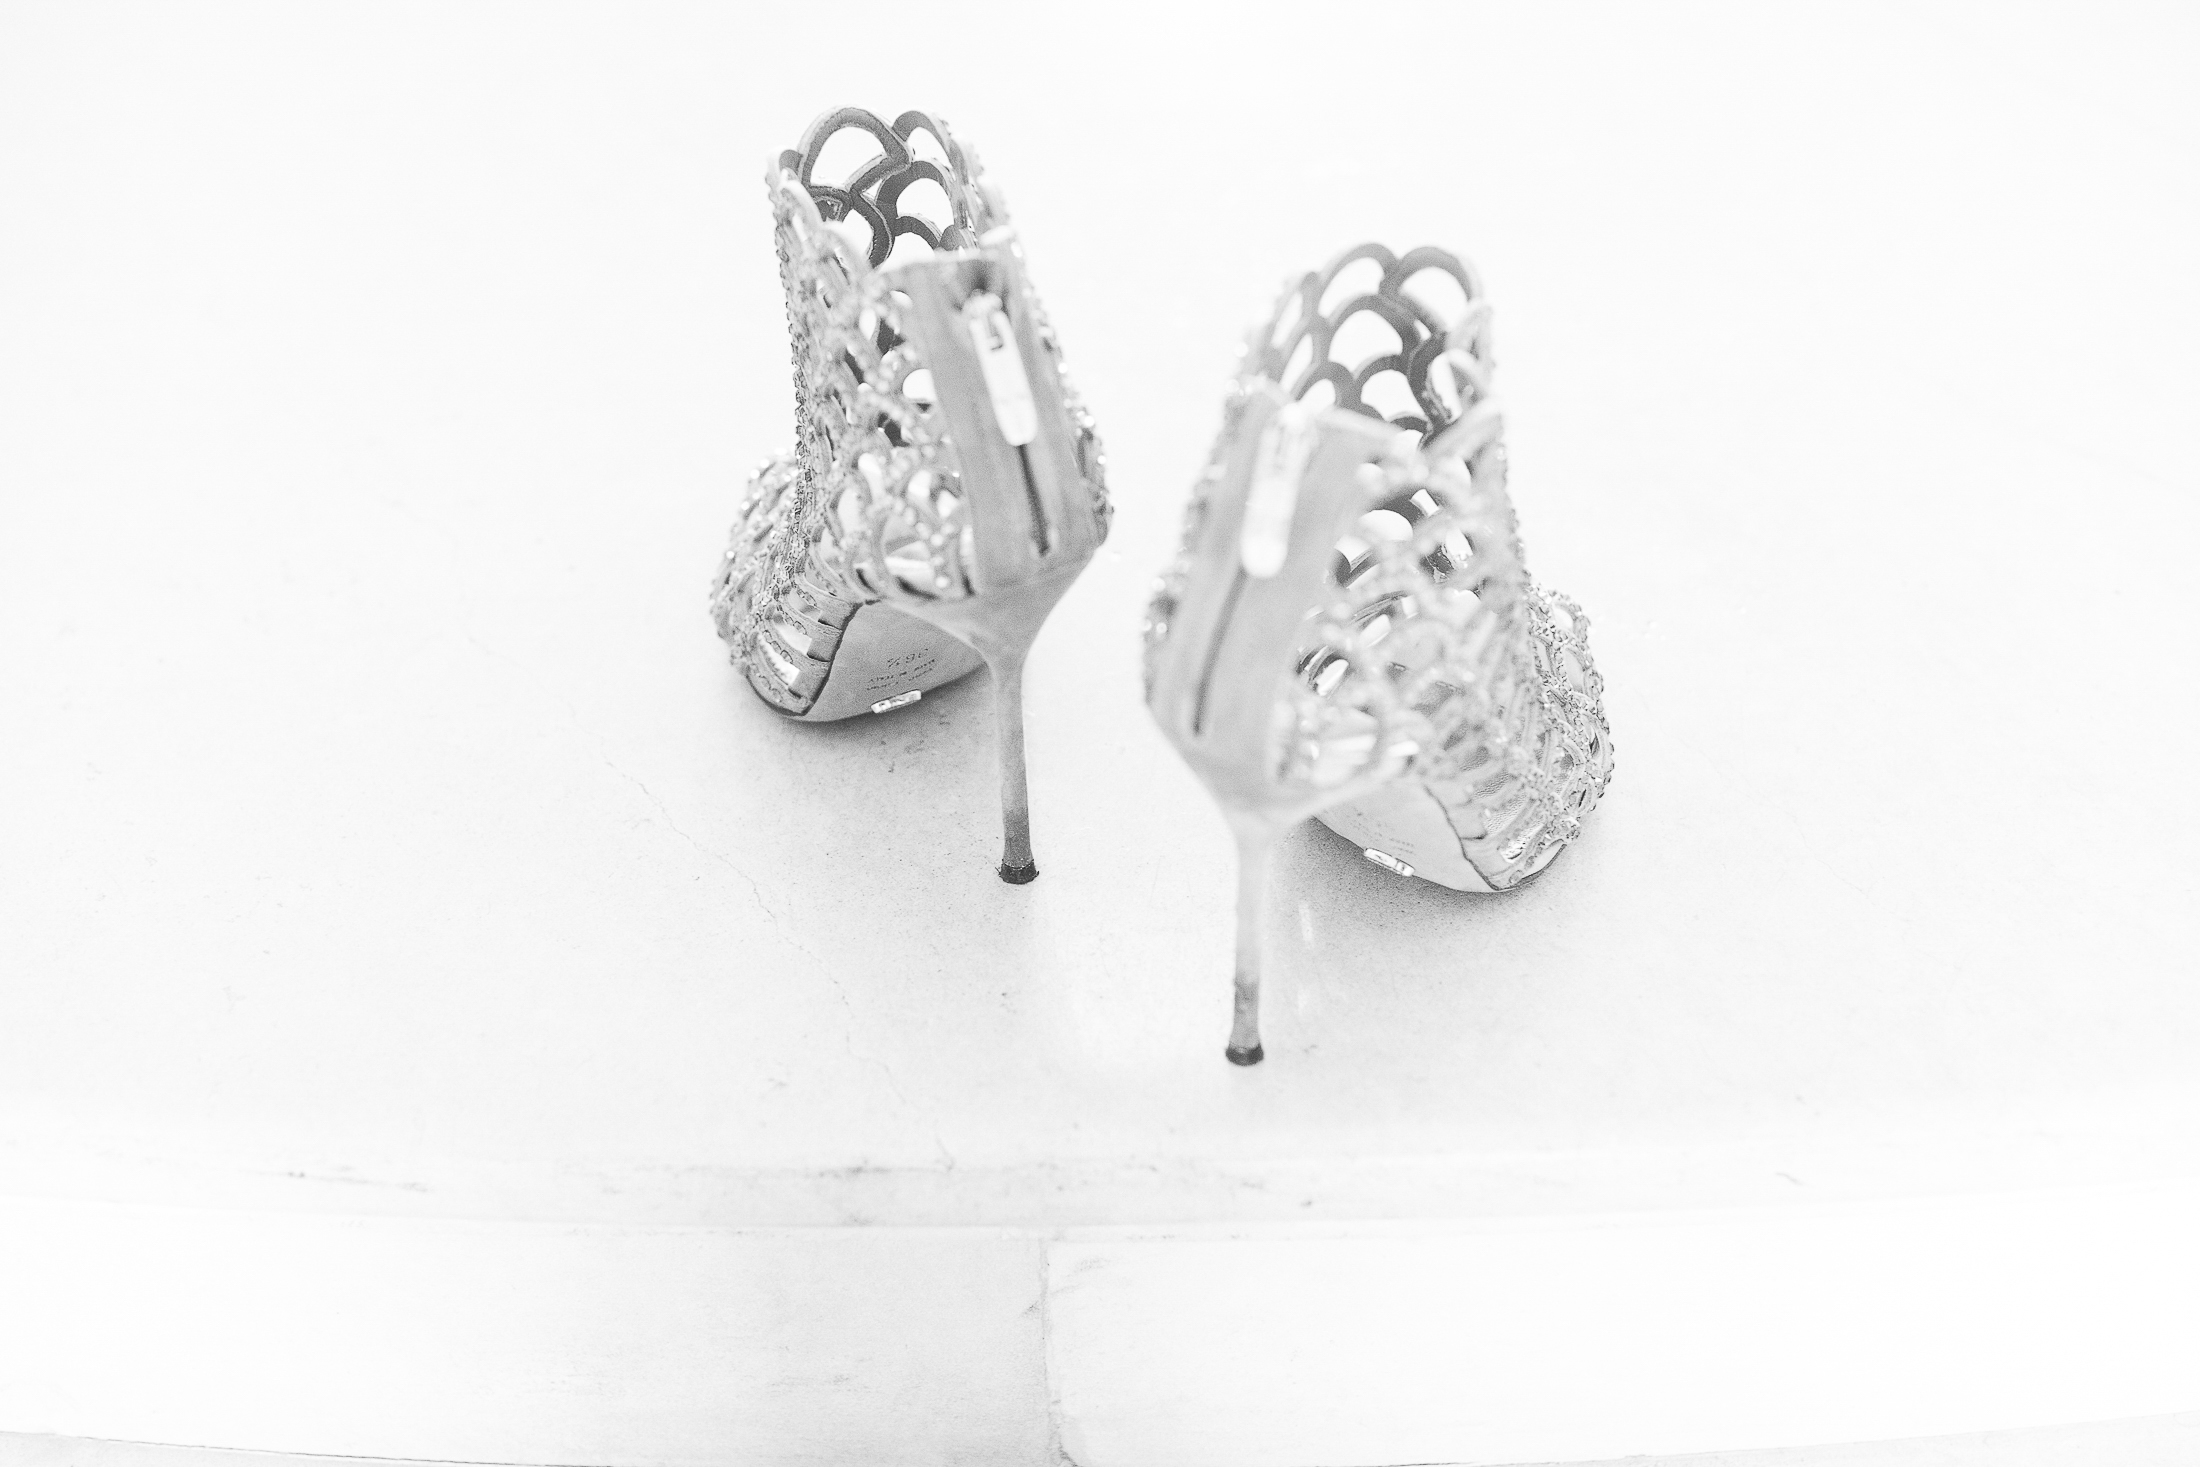 pasquale andreotti bride's shoes